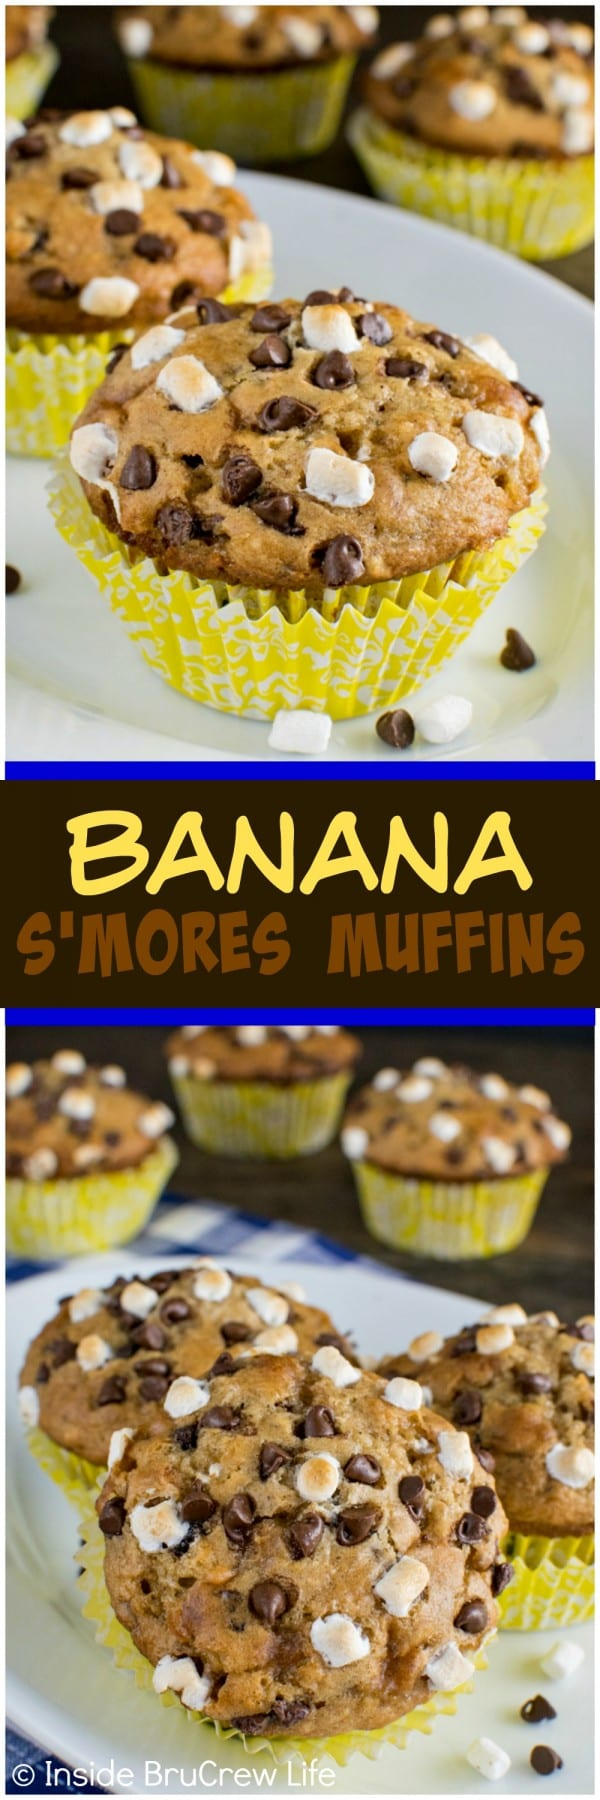 Banana S'mores Muffins - these easy muffins are loaded with marshmallow, chocolate, and graham cracker crumbs. Awesome breakfast recipe!